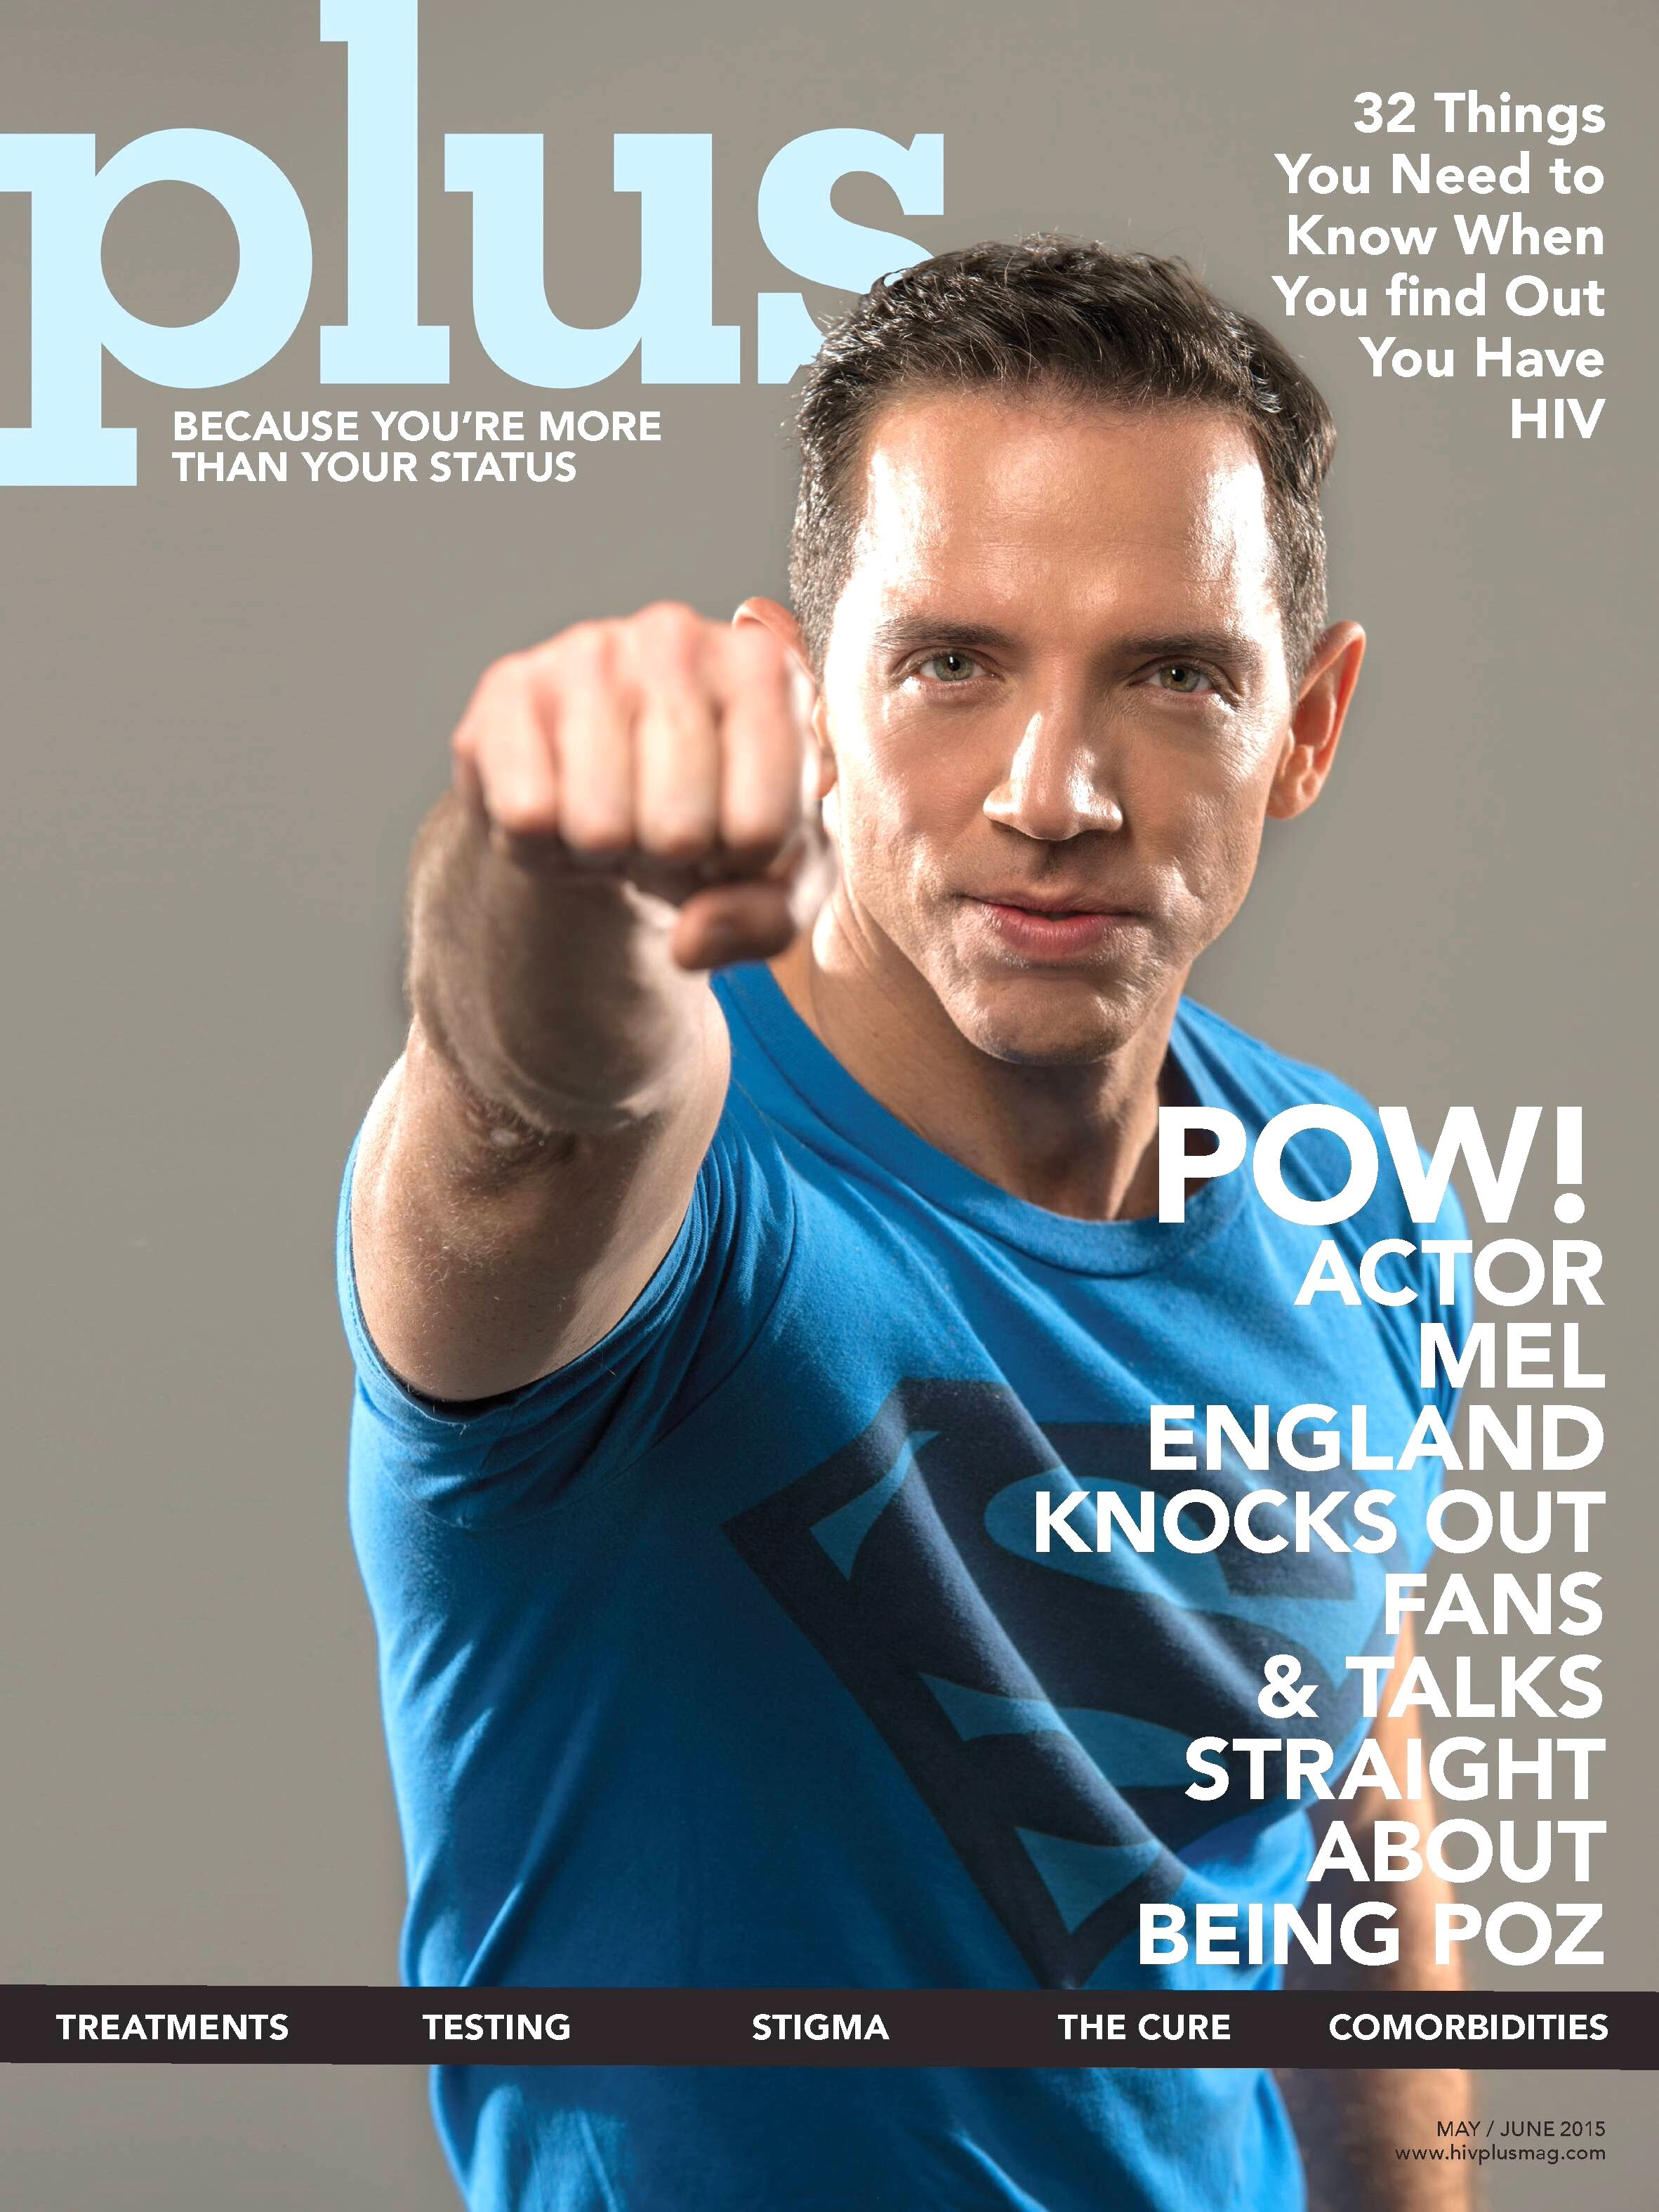 Actor Mel England on the cover of May/June issue of HIV Plus Magazine